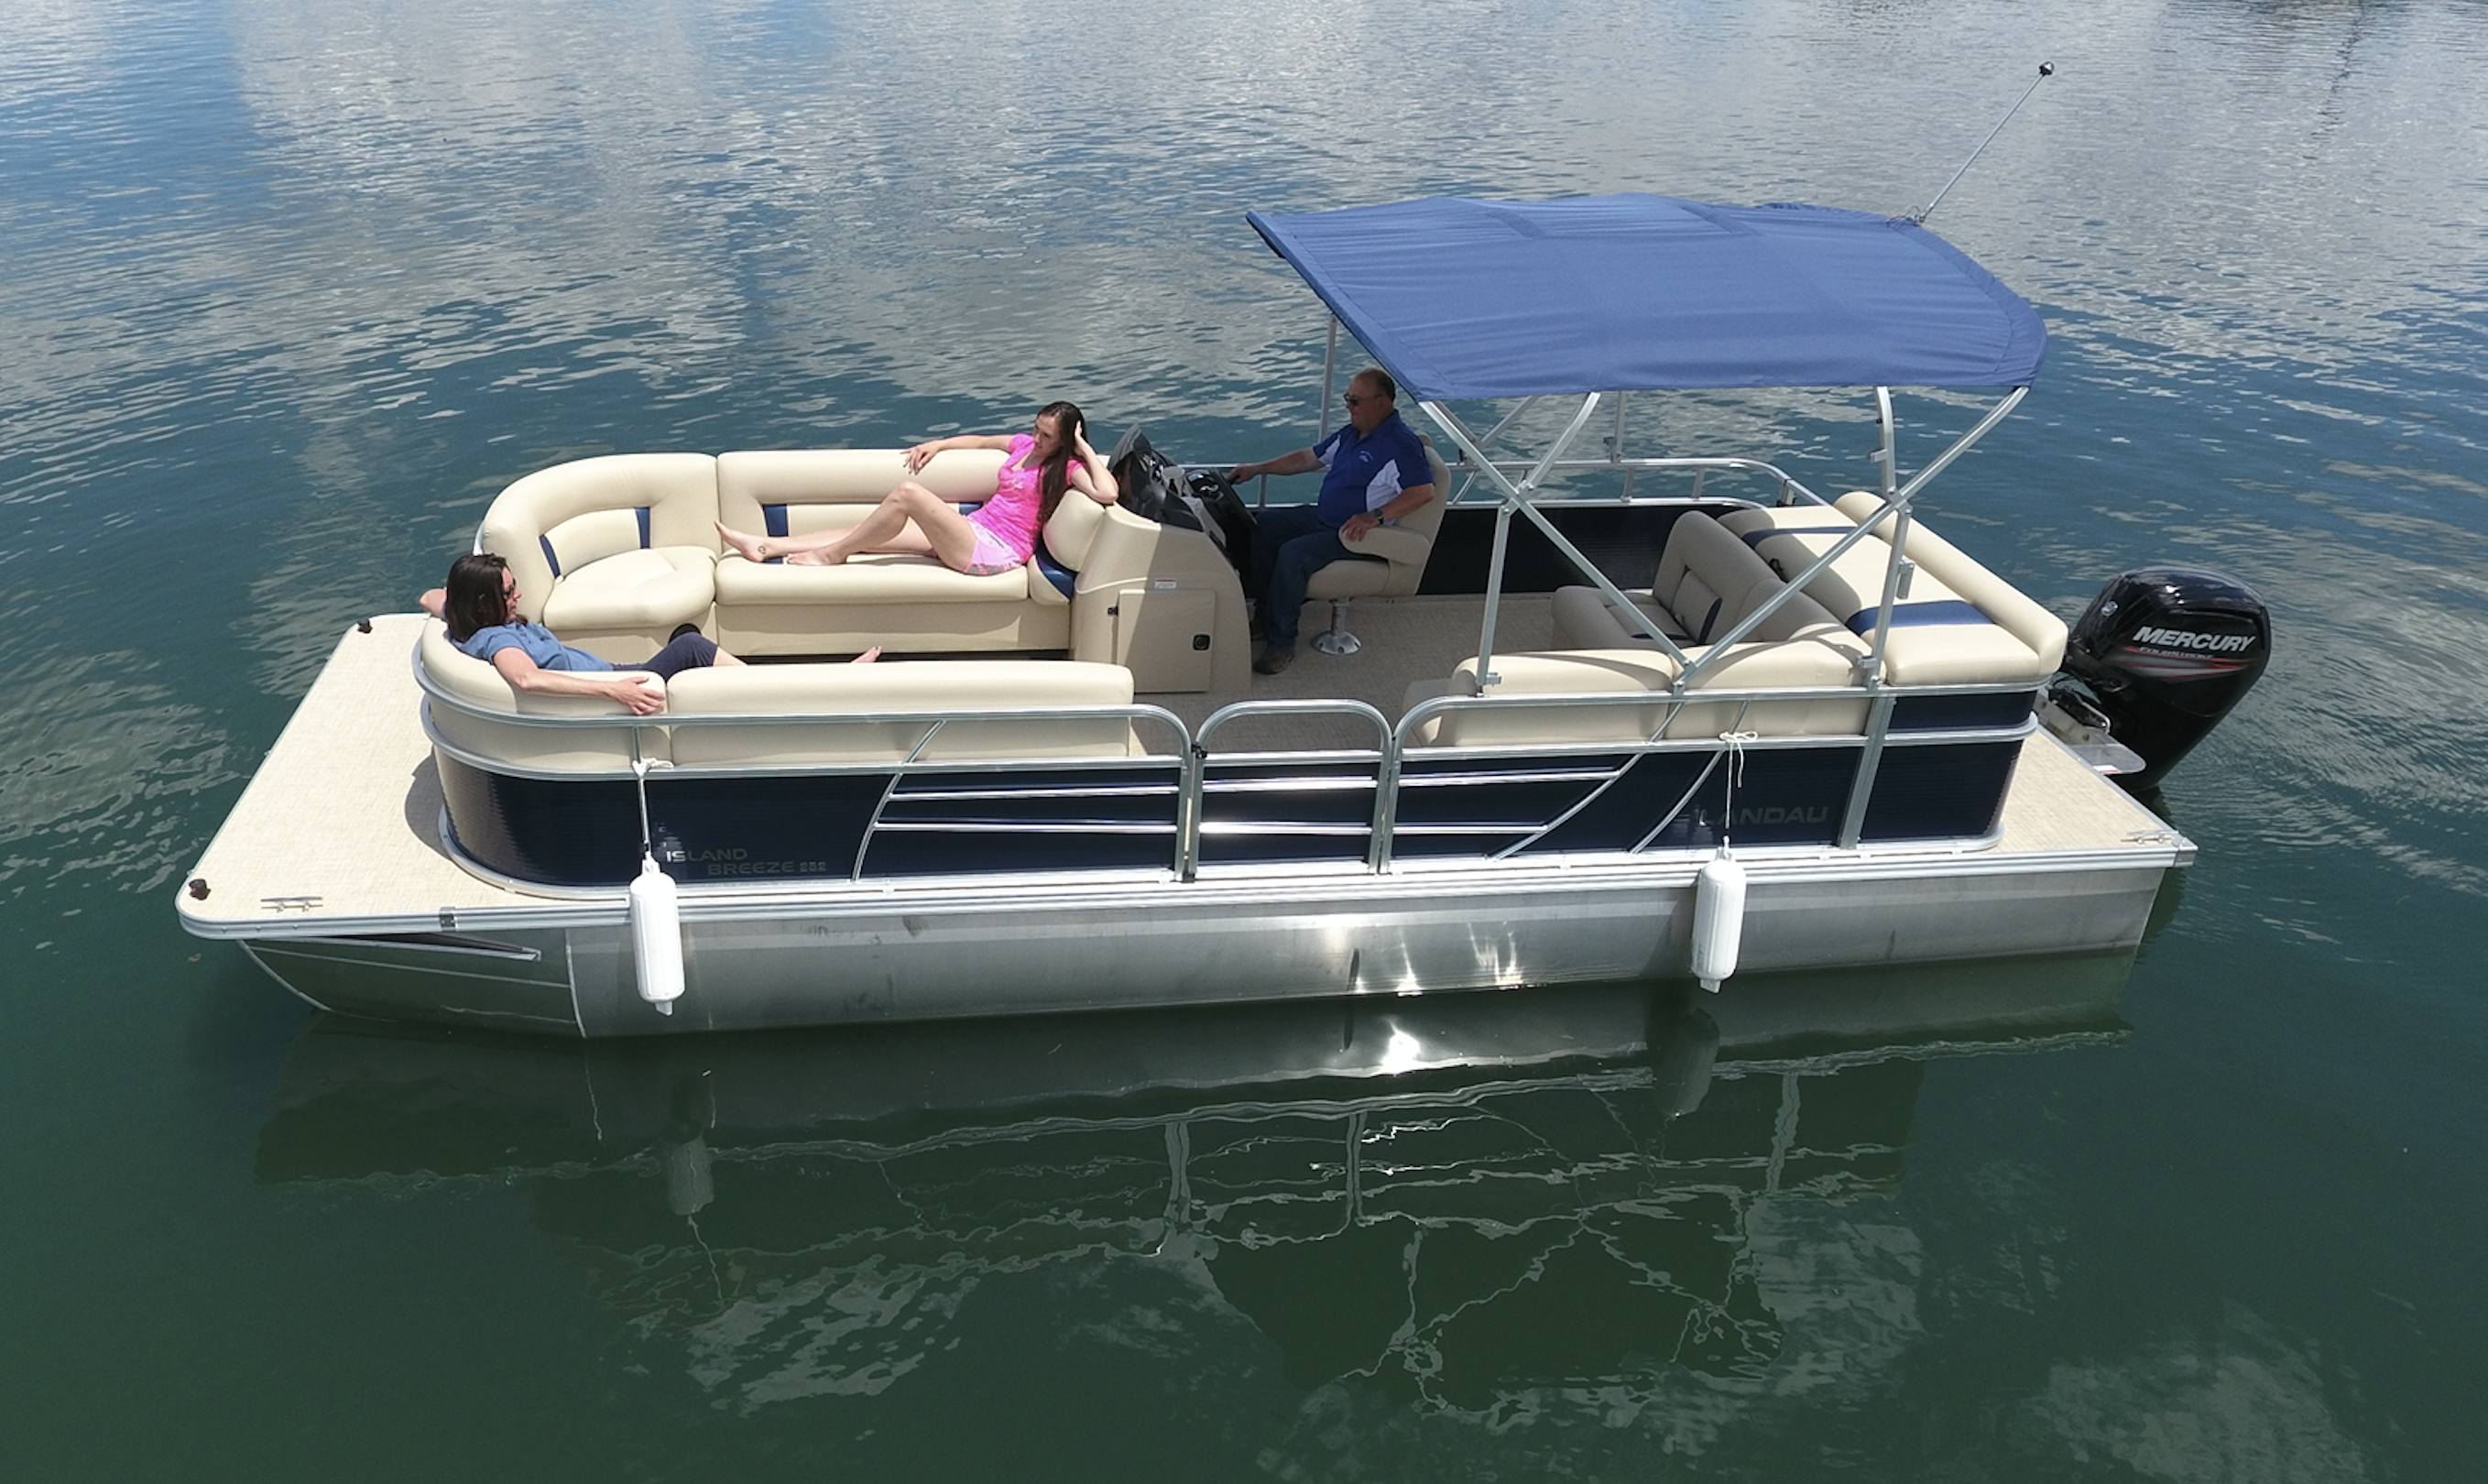 Pontoon boats with bathroom for sale - Boat Rentals